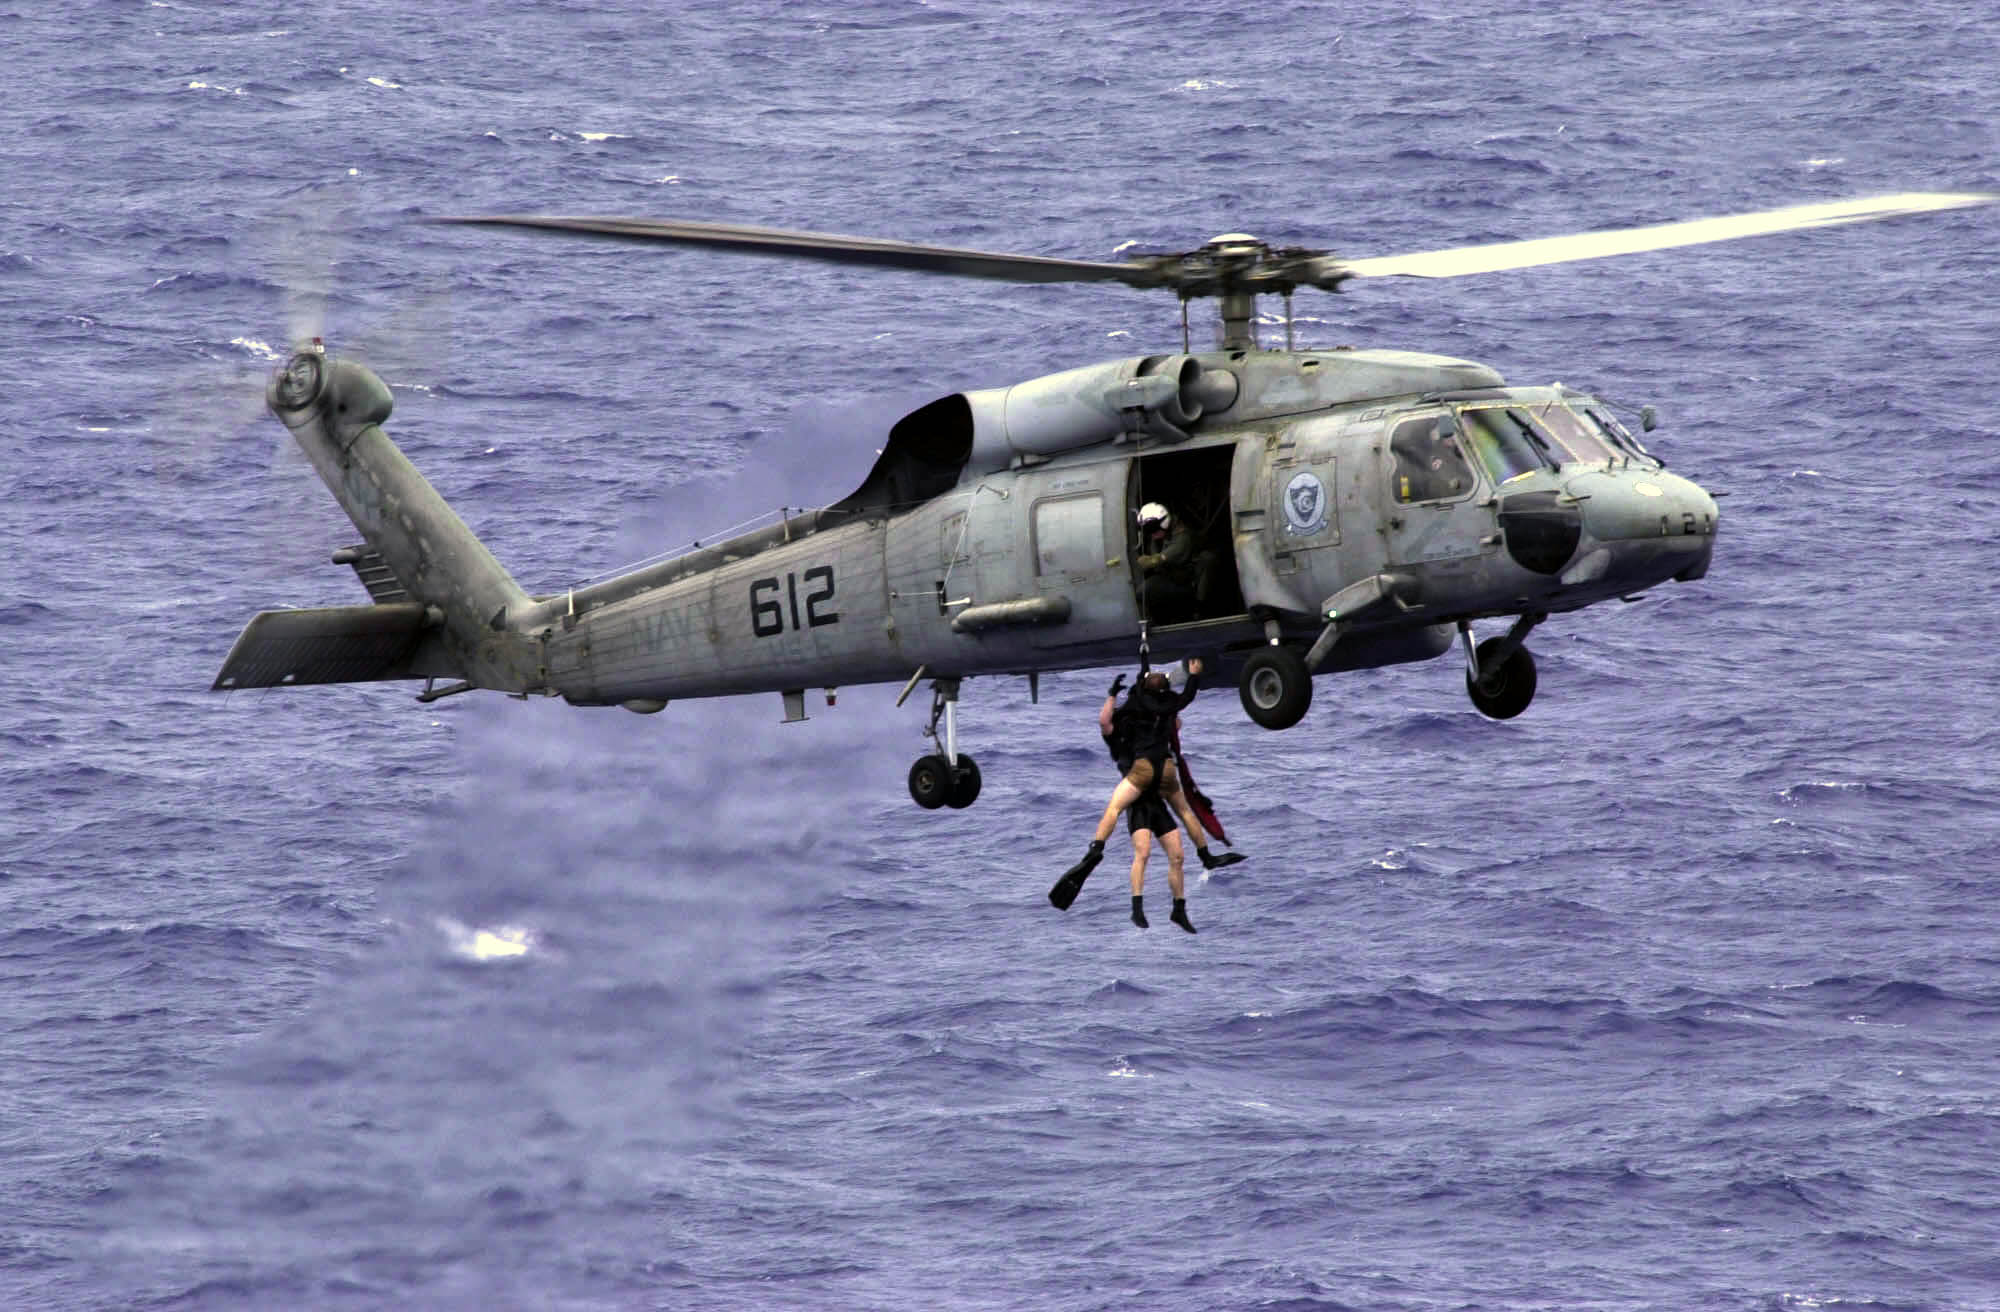 US_Navy_031017-N-1577S-003_An_SH-60F_Seahawk_assigned_to_the_Indians_of_Helicopter_Anti-Submarine_Squadron_Six_%28HS-6%29_recover_Search_and_Rescue_%28SAR%29_swimmers.jpg